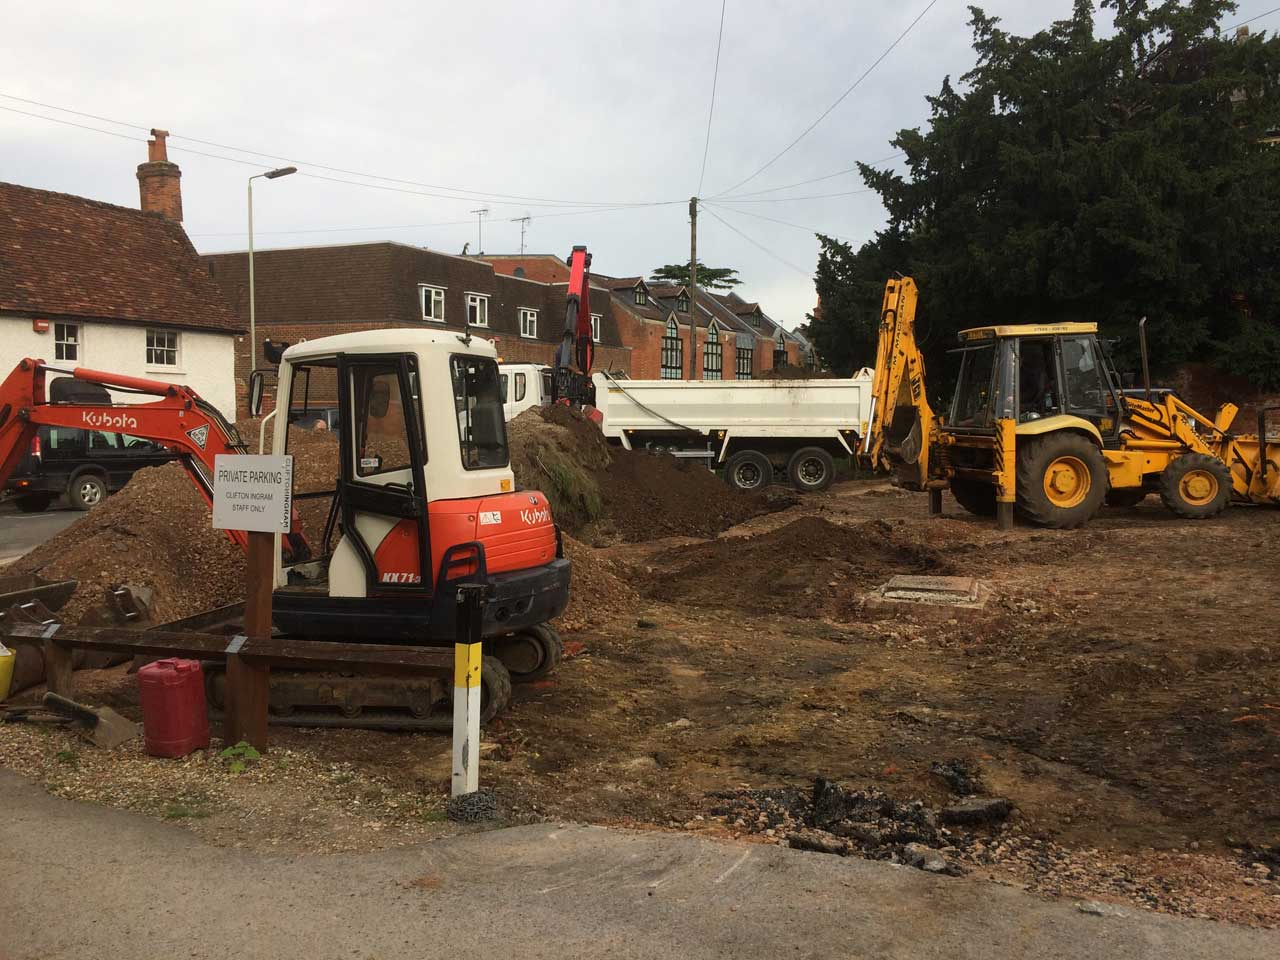 Image of a reduction dig for the construction of a new carpark in Wokingham, Berkshire. Digger hire and excavator hire in Berkshire, Hampshire and Surrey.